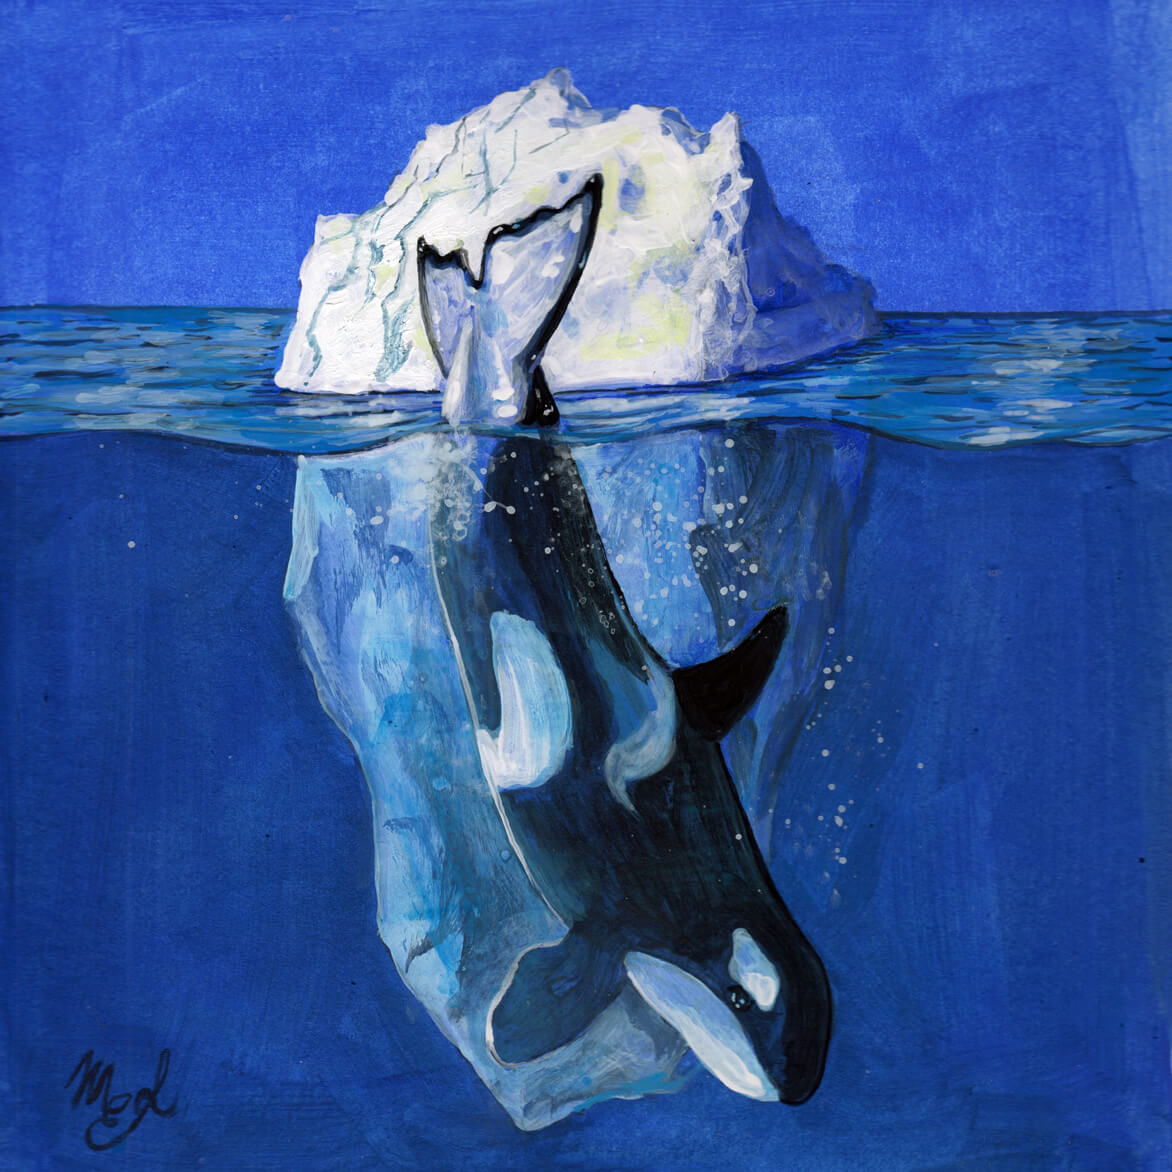 Painting of an orca diving into the water with a background of an iceberg.